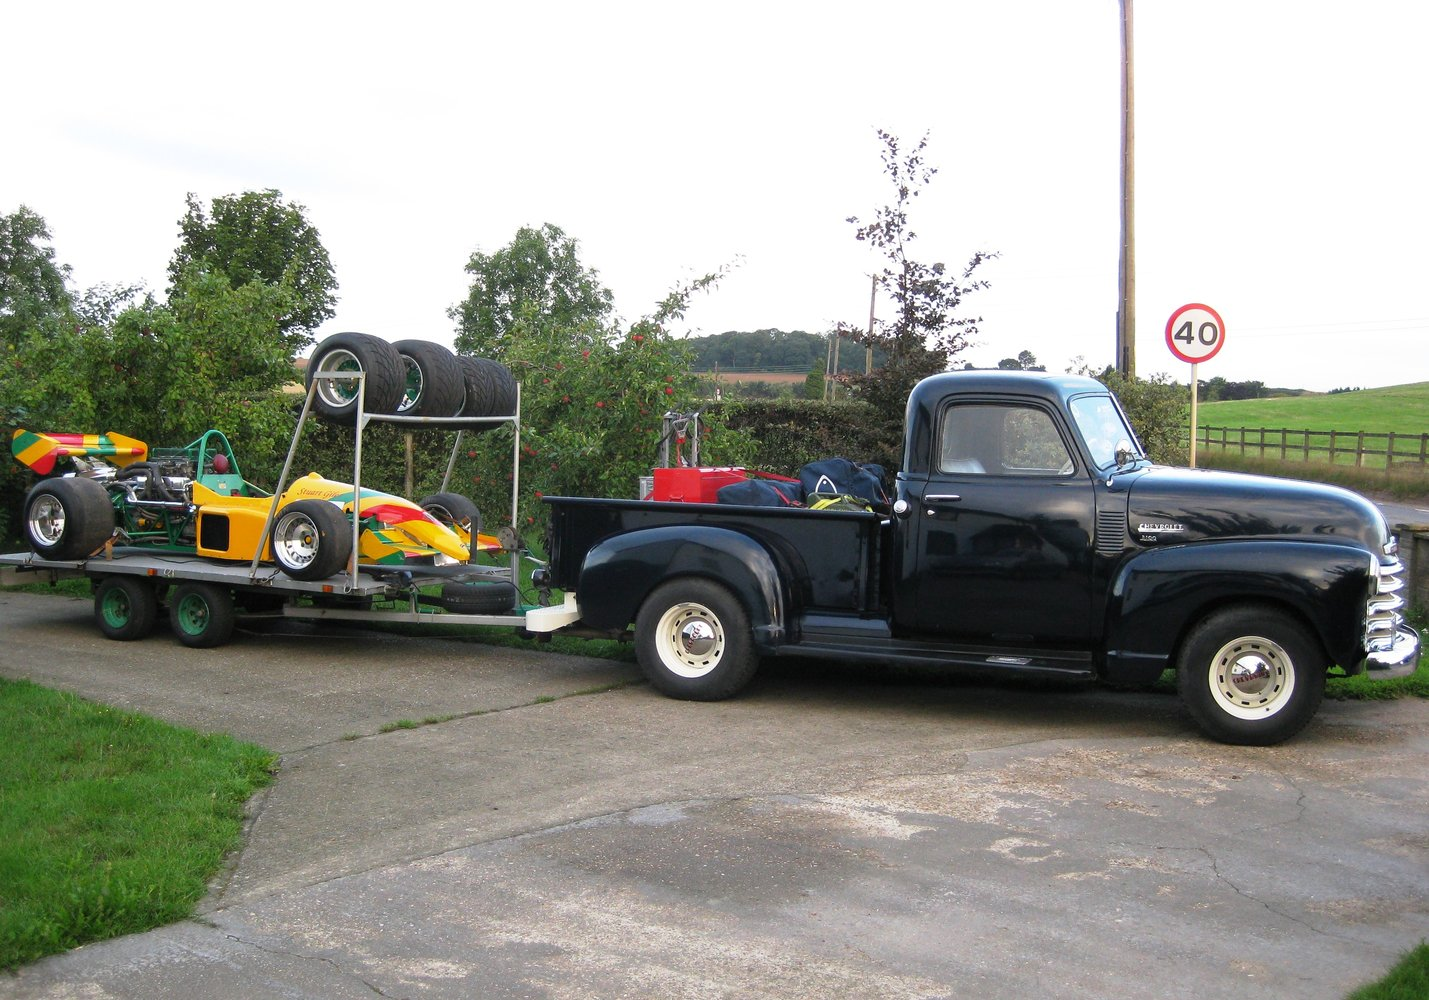 chevy_towing racer1.jpg